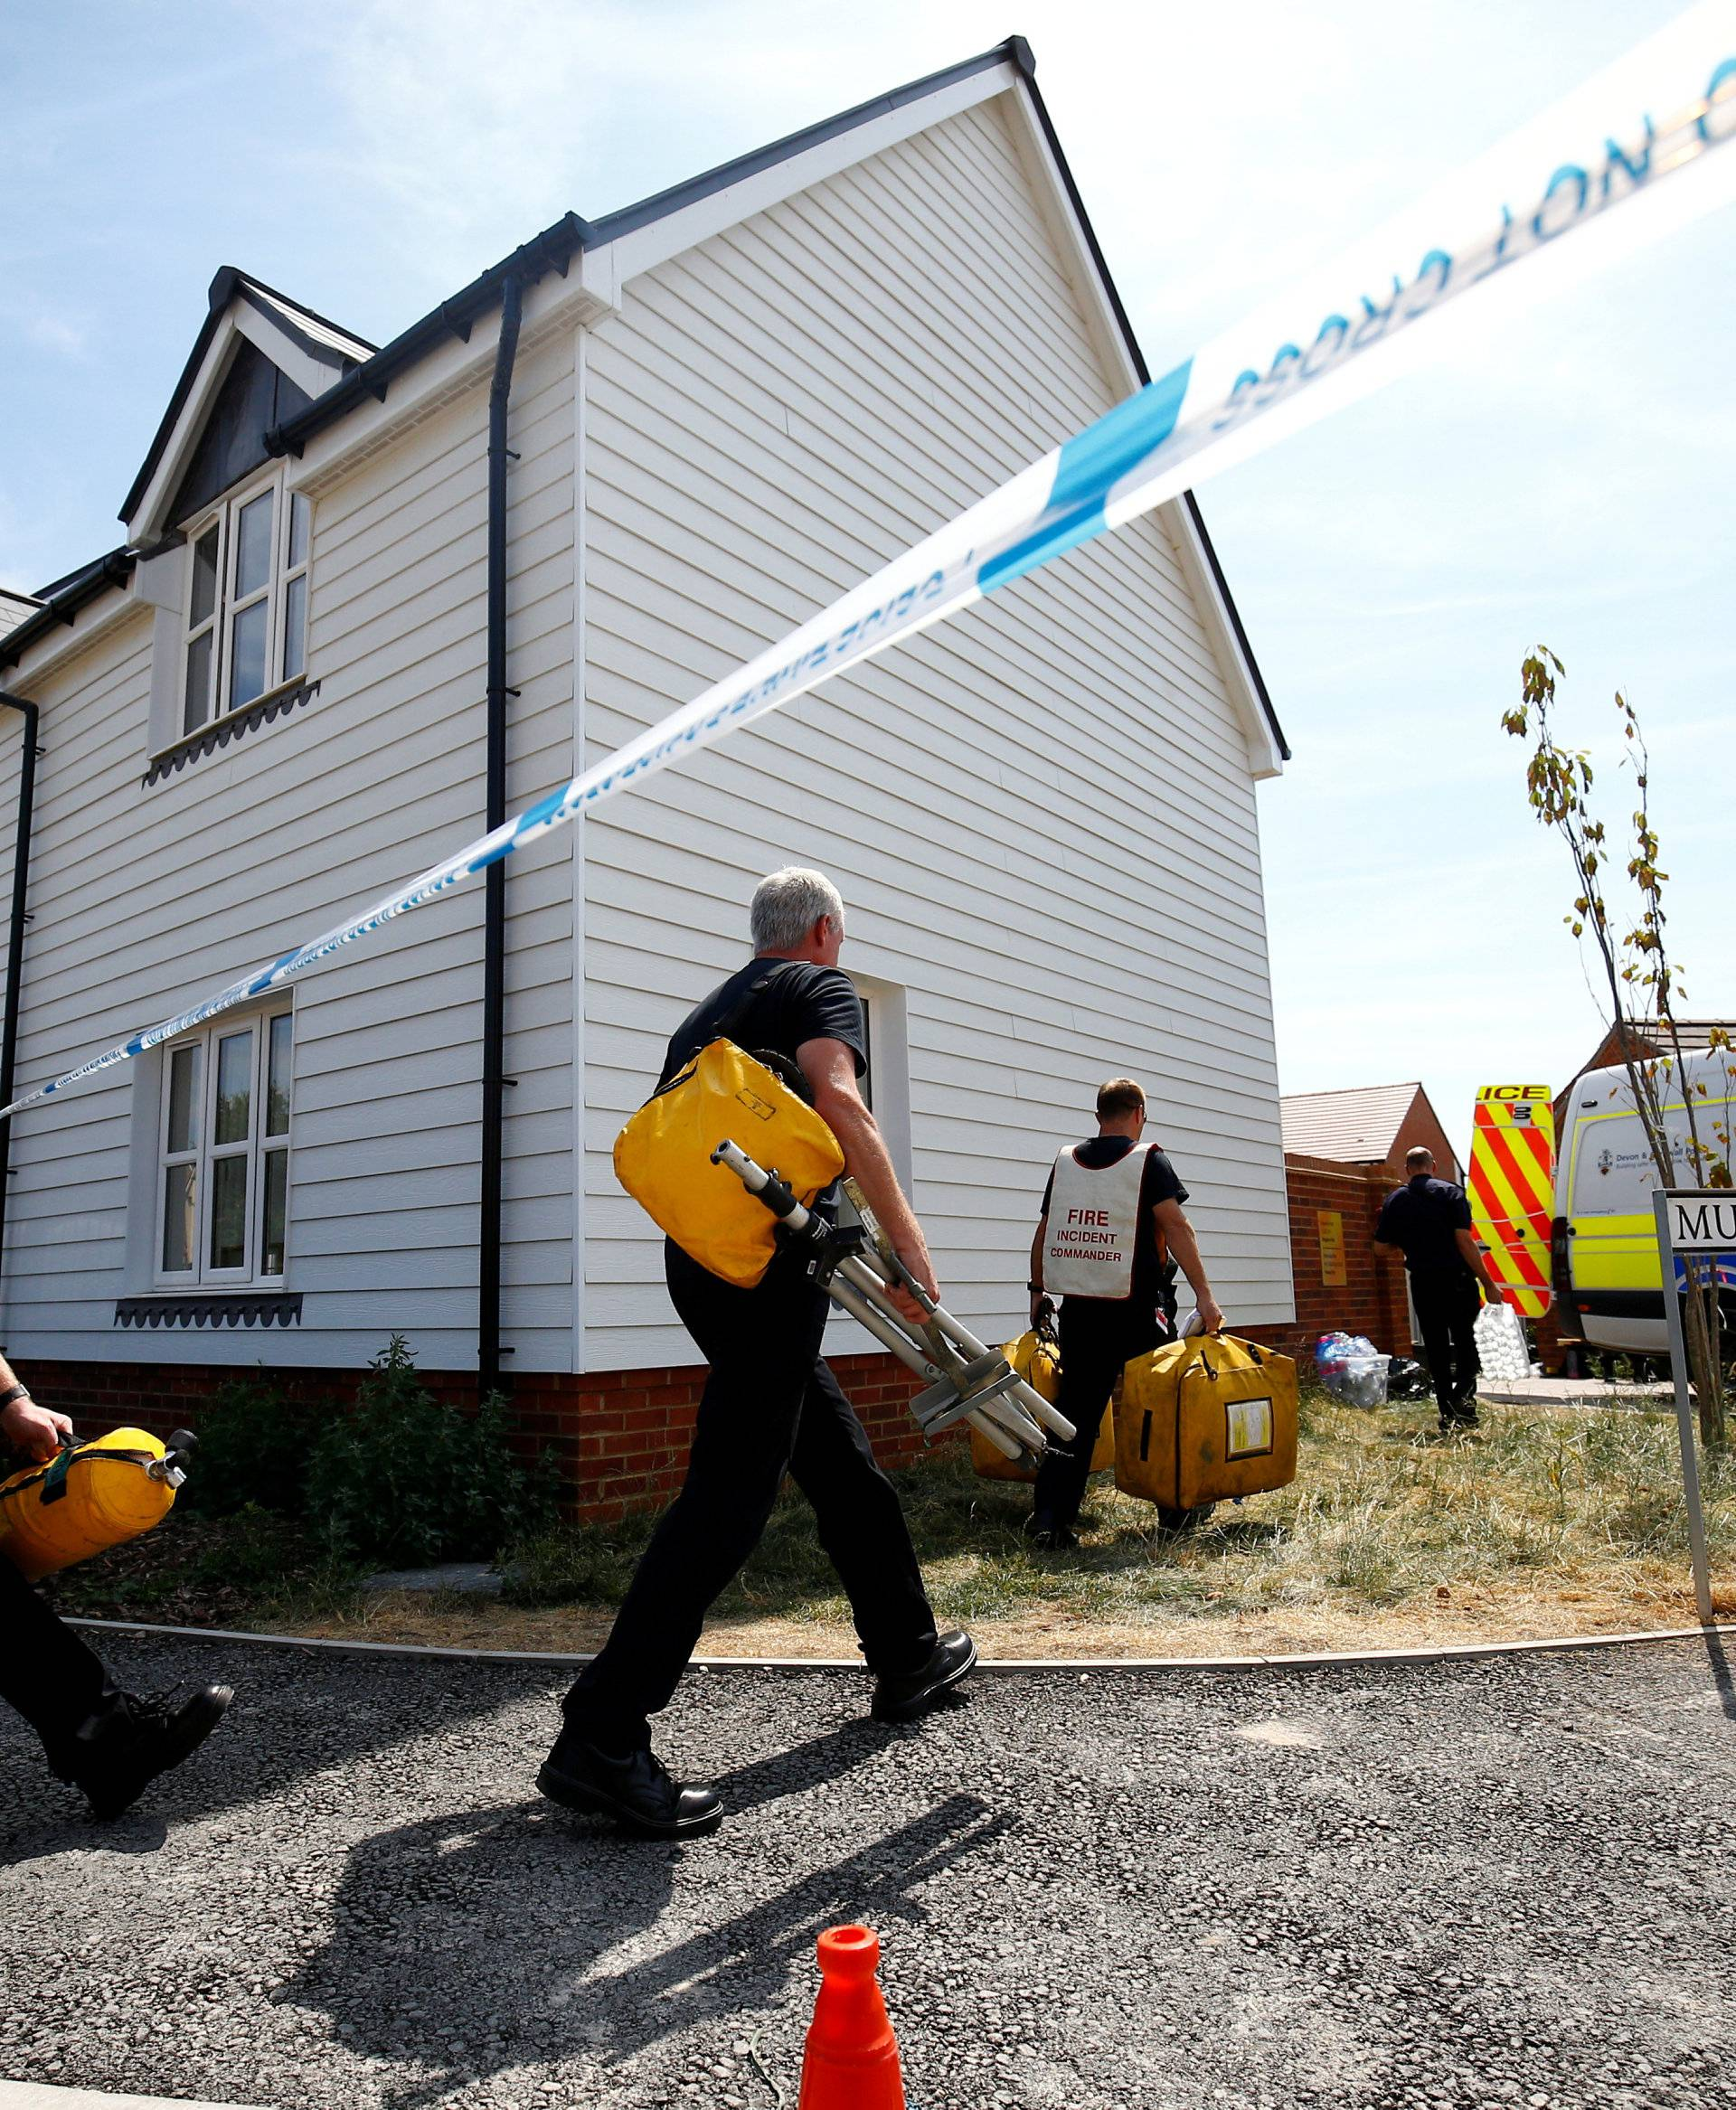 FILE PHOTO: Fire and Rescue Service personel arrive with safety equipment at the site of a housing estate on Muggleton Road, after it was confirmed that two people had been poisoned with the nerve-agent Novichok, in Amesbury